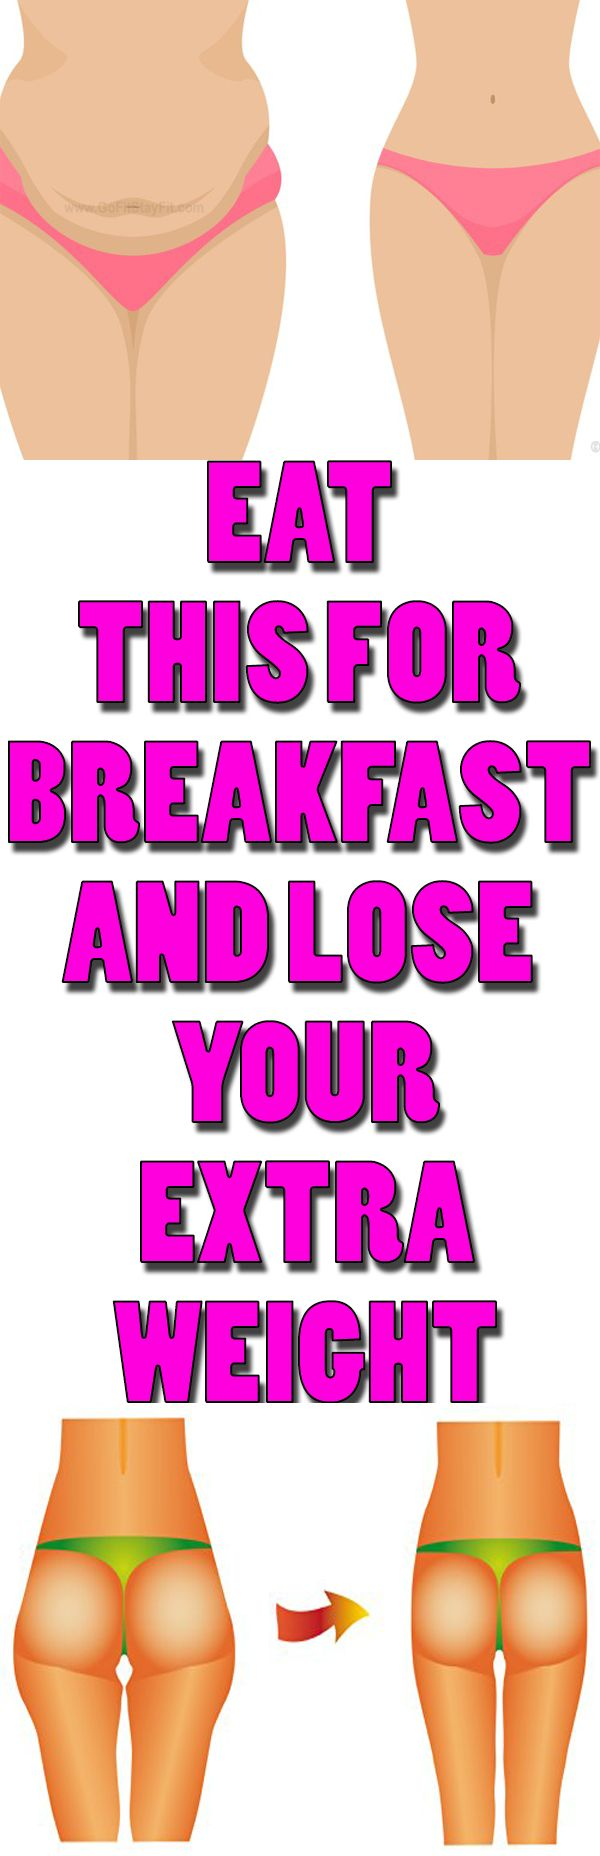 Eat This for Breakfast and Lose Your Extra Weight